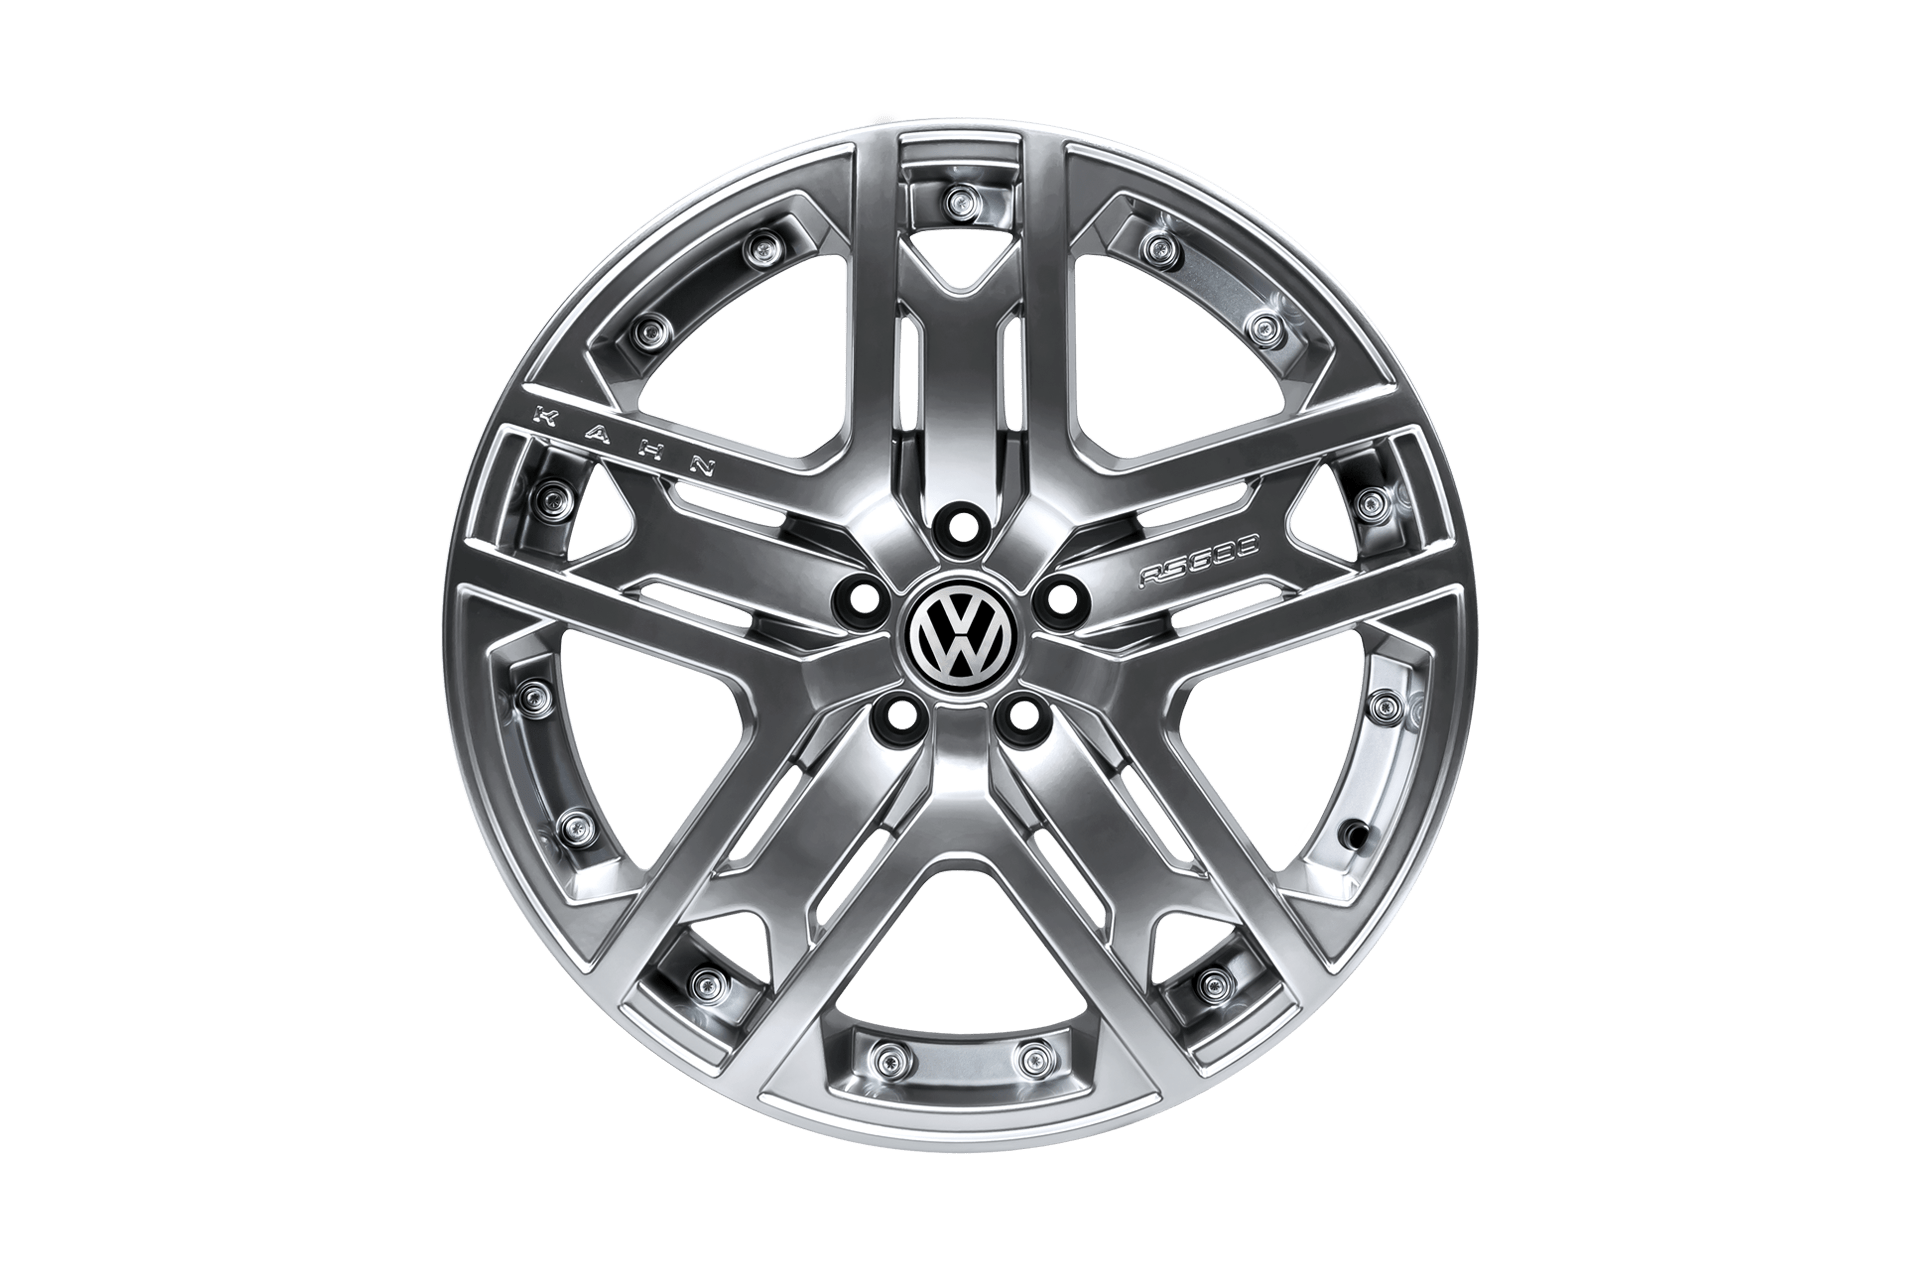 Volkswagen T5 (2003-2015) Rs600 Light Alloy Wheels by Kahn - Image 3065